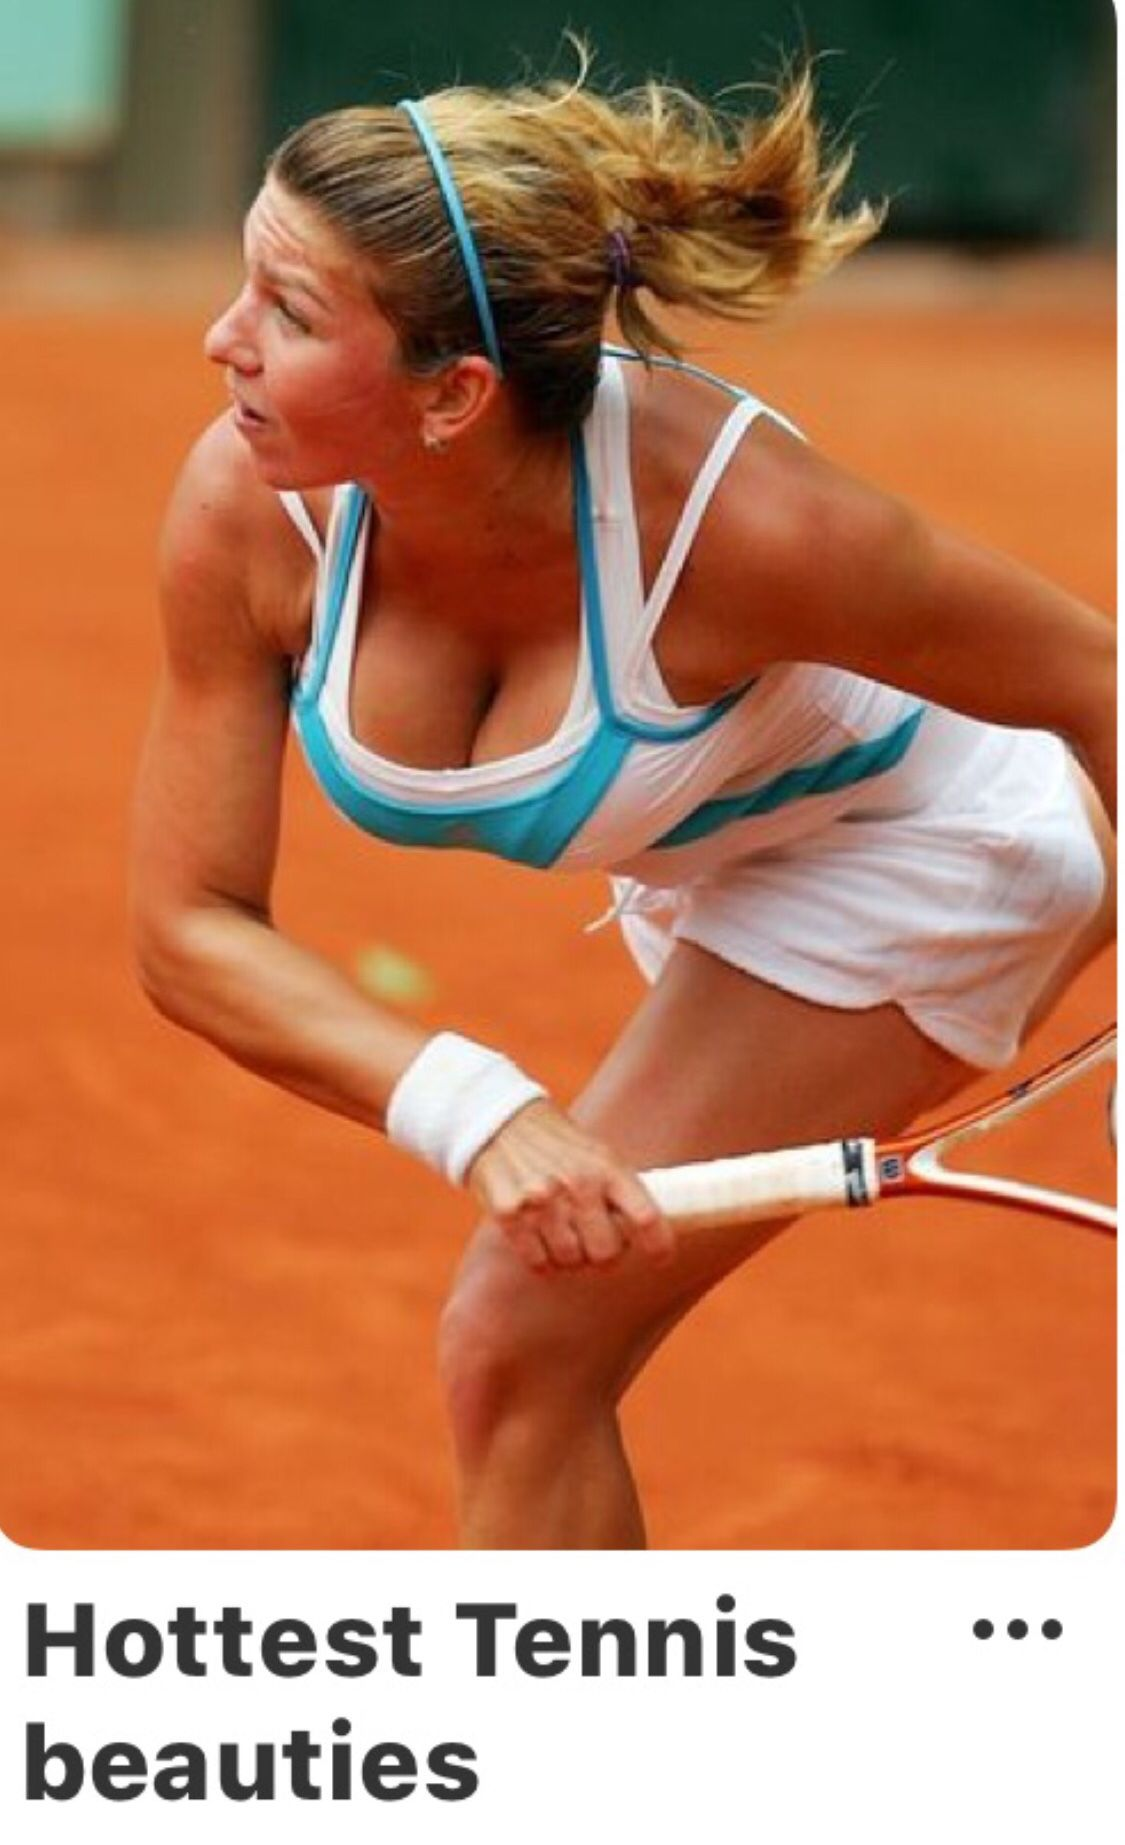 Pin By Mark Rucker On Fantastic Sports In 2020 Tennis Players Female Tennis Players Simona Halep